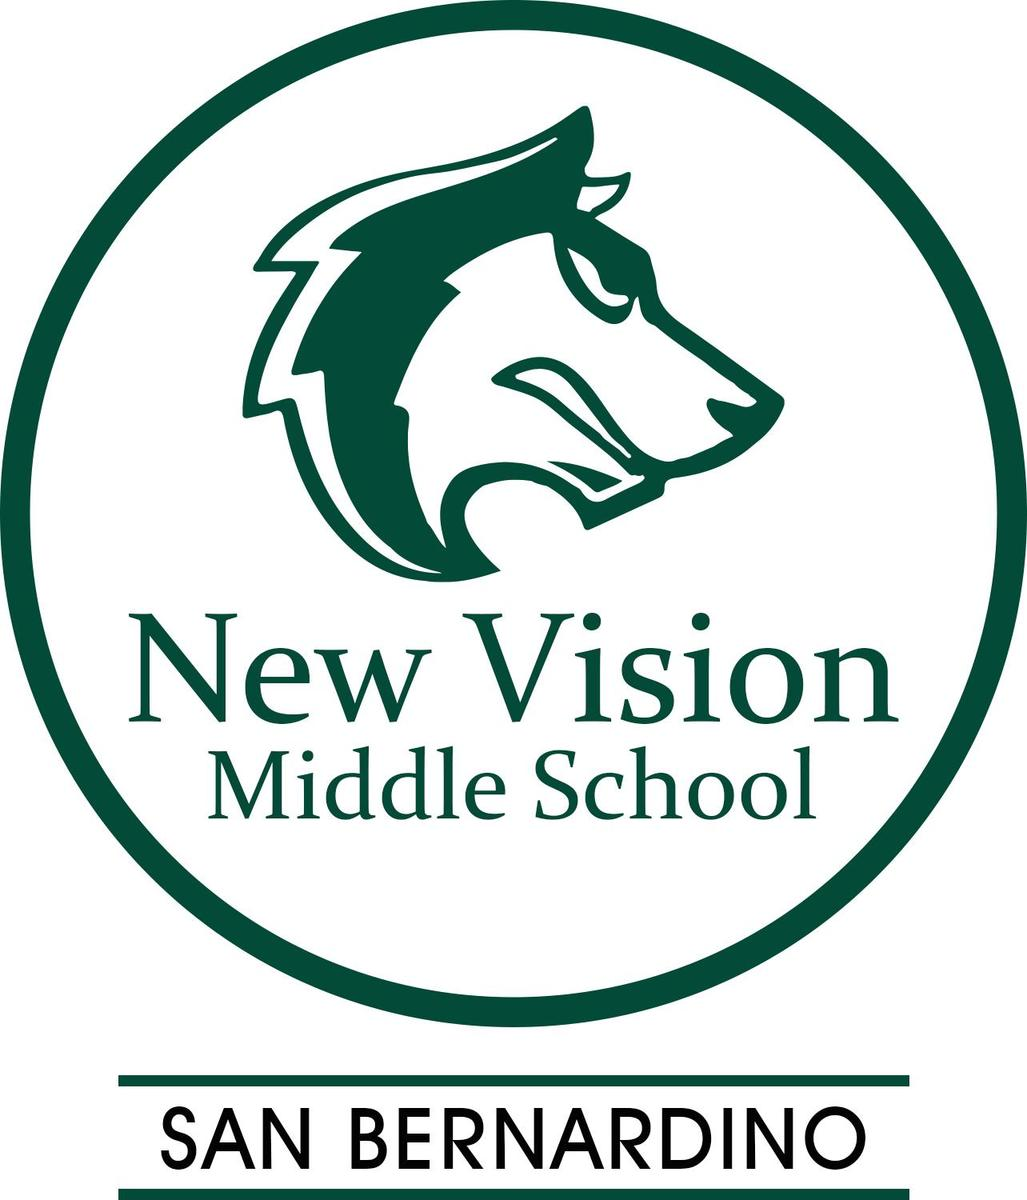 New Vision Middle School